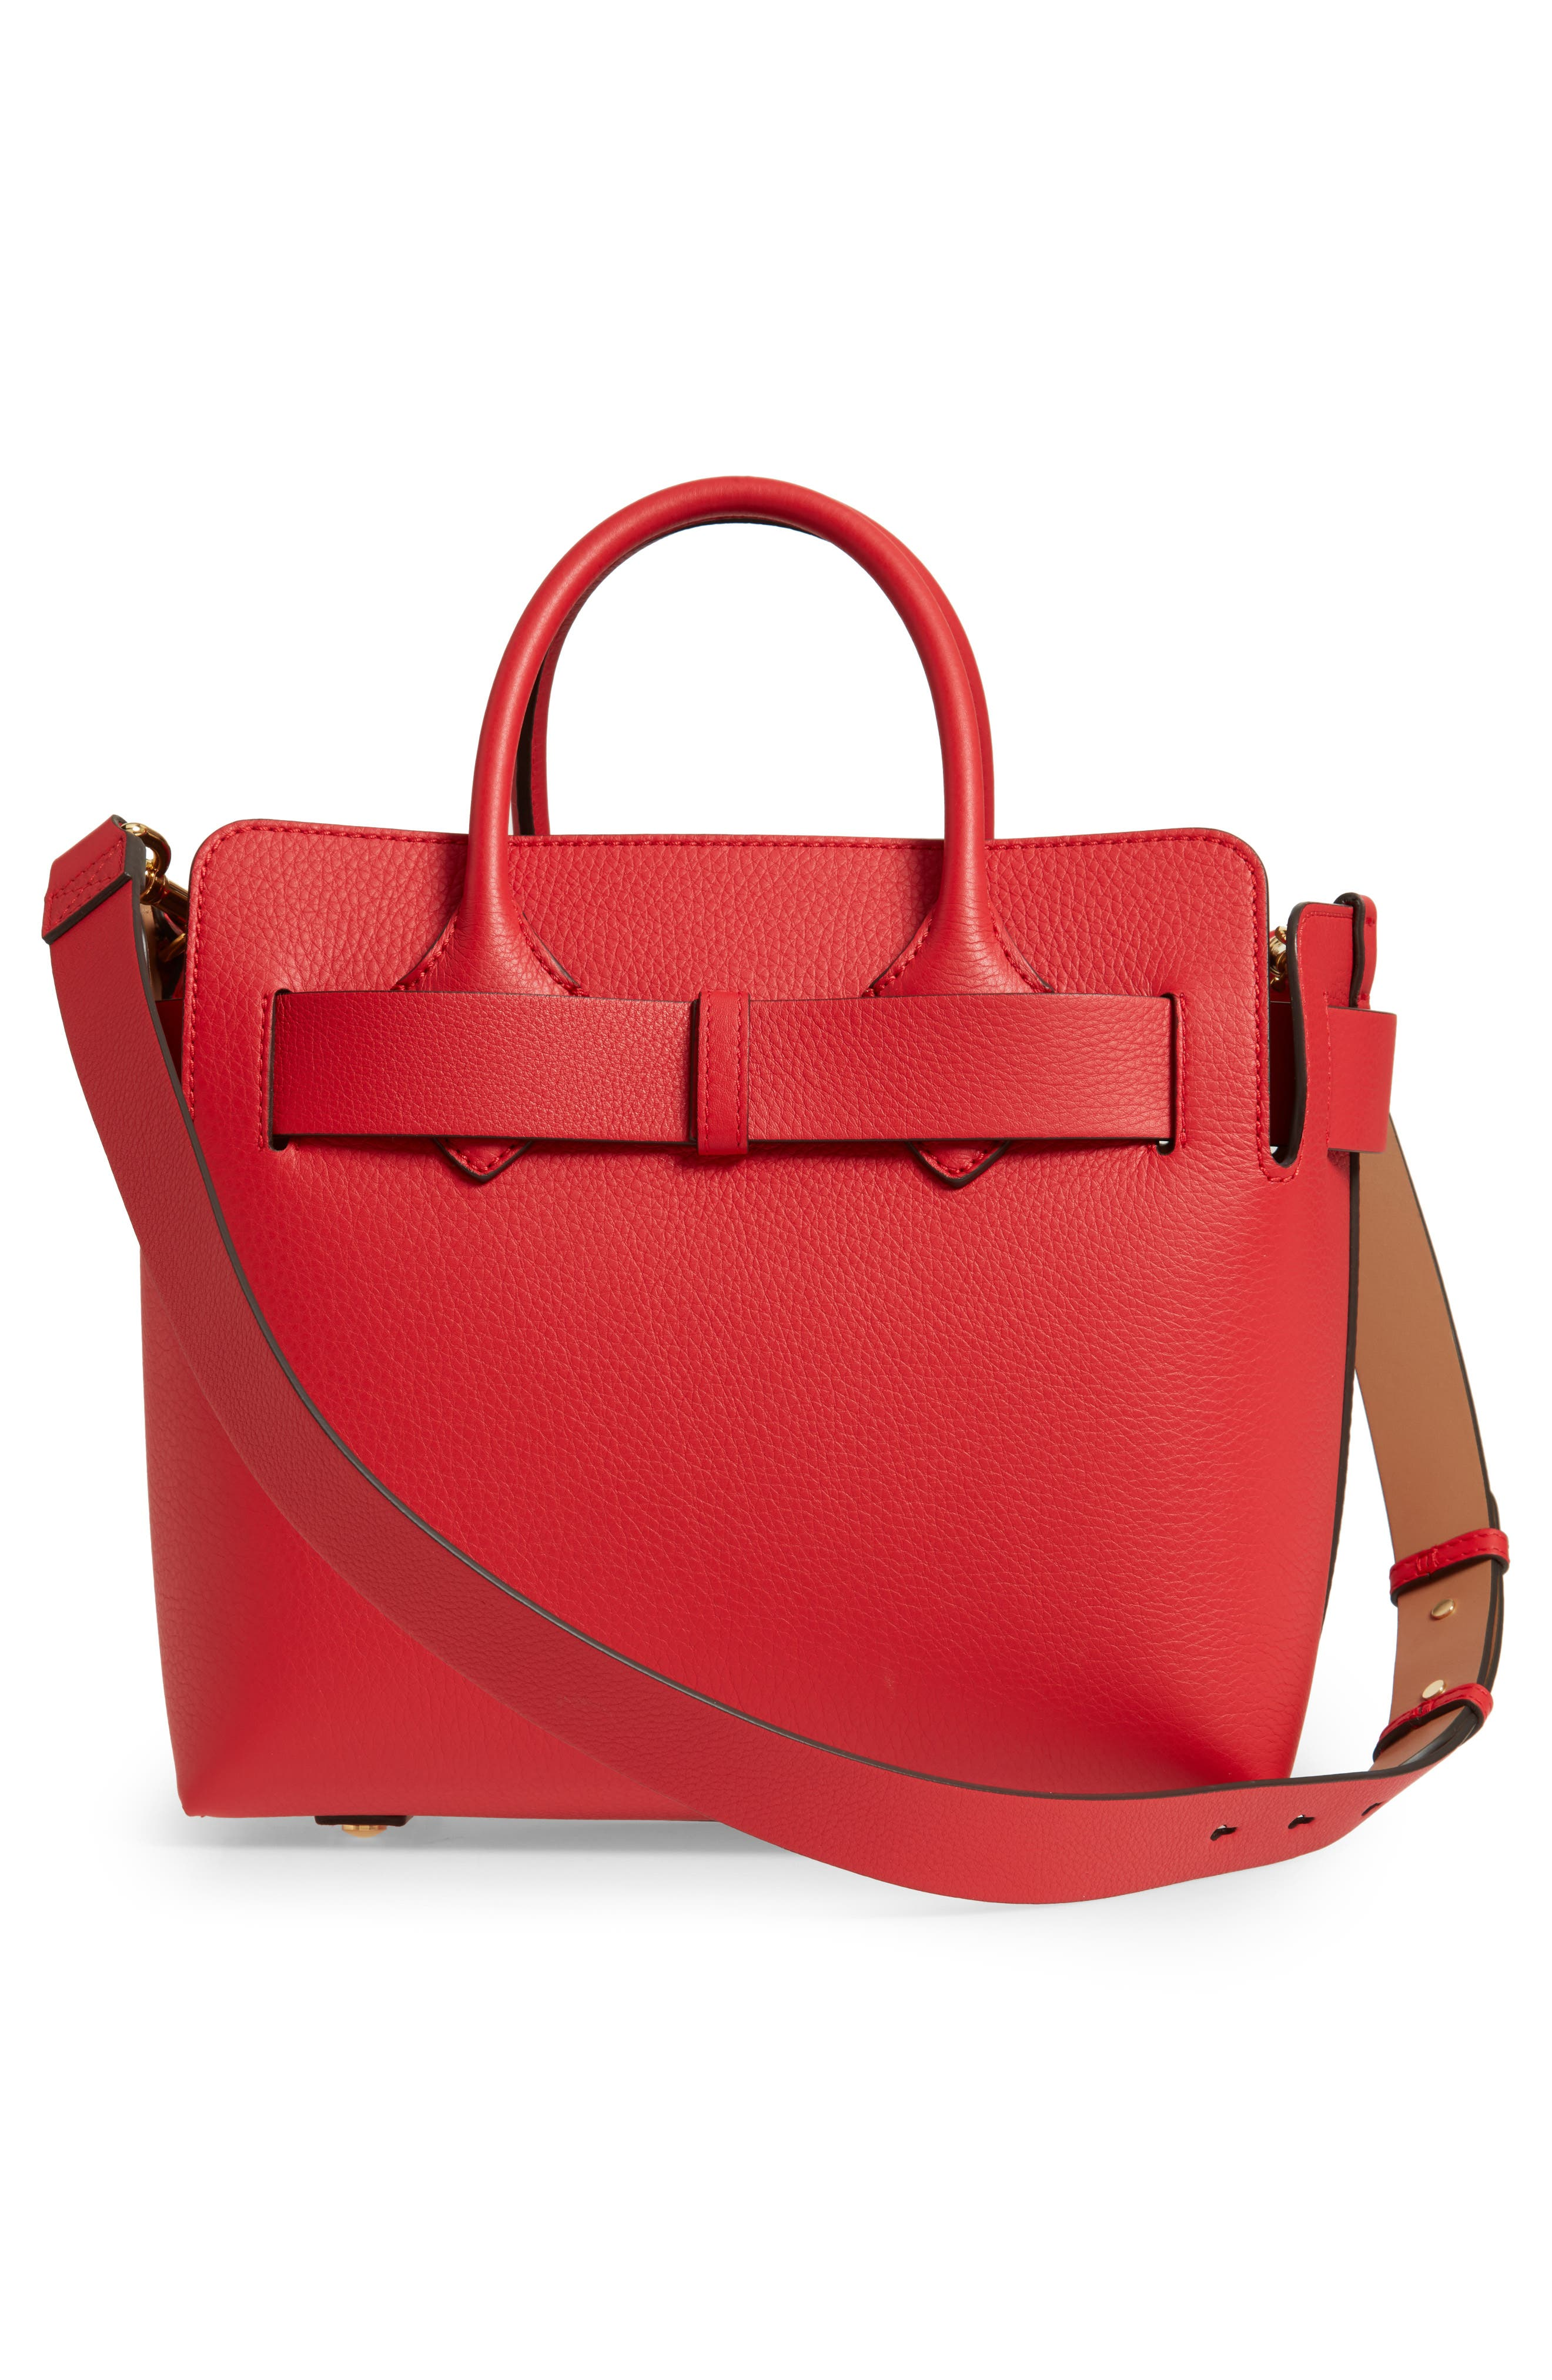 BURBERRY,                             Small Belt Leather Satchel,                             Alternate thumbnail 4, color,                             BRIGHT MILITARY RED